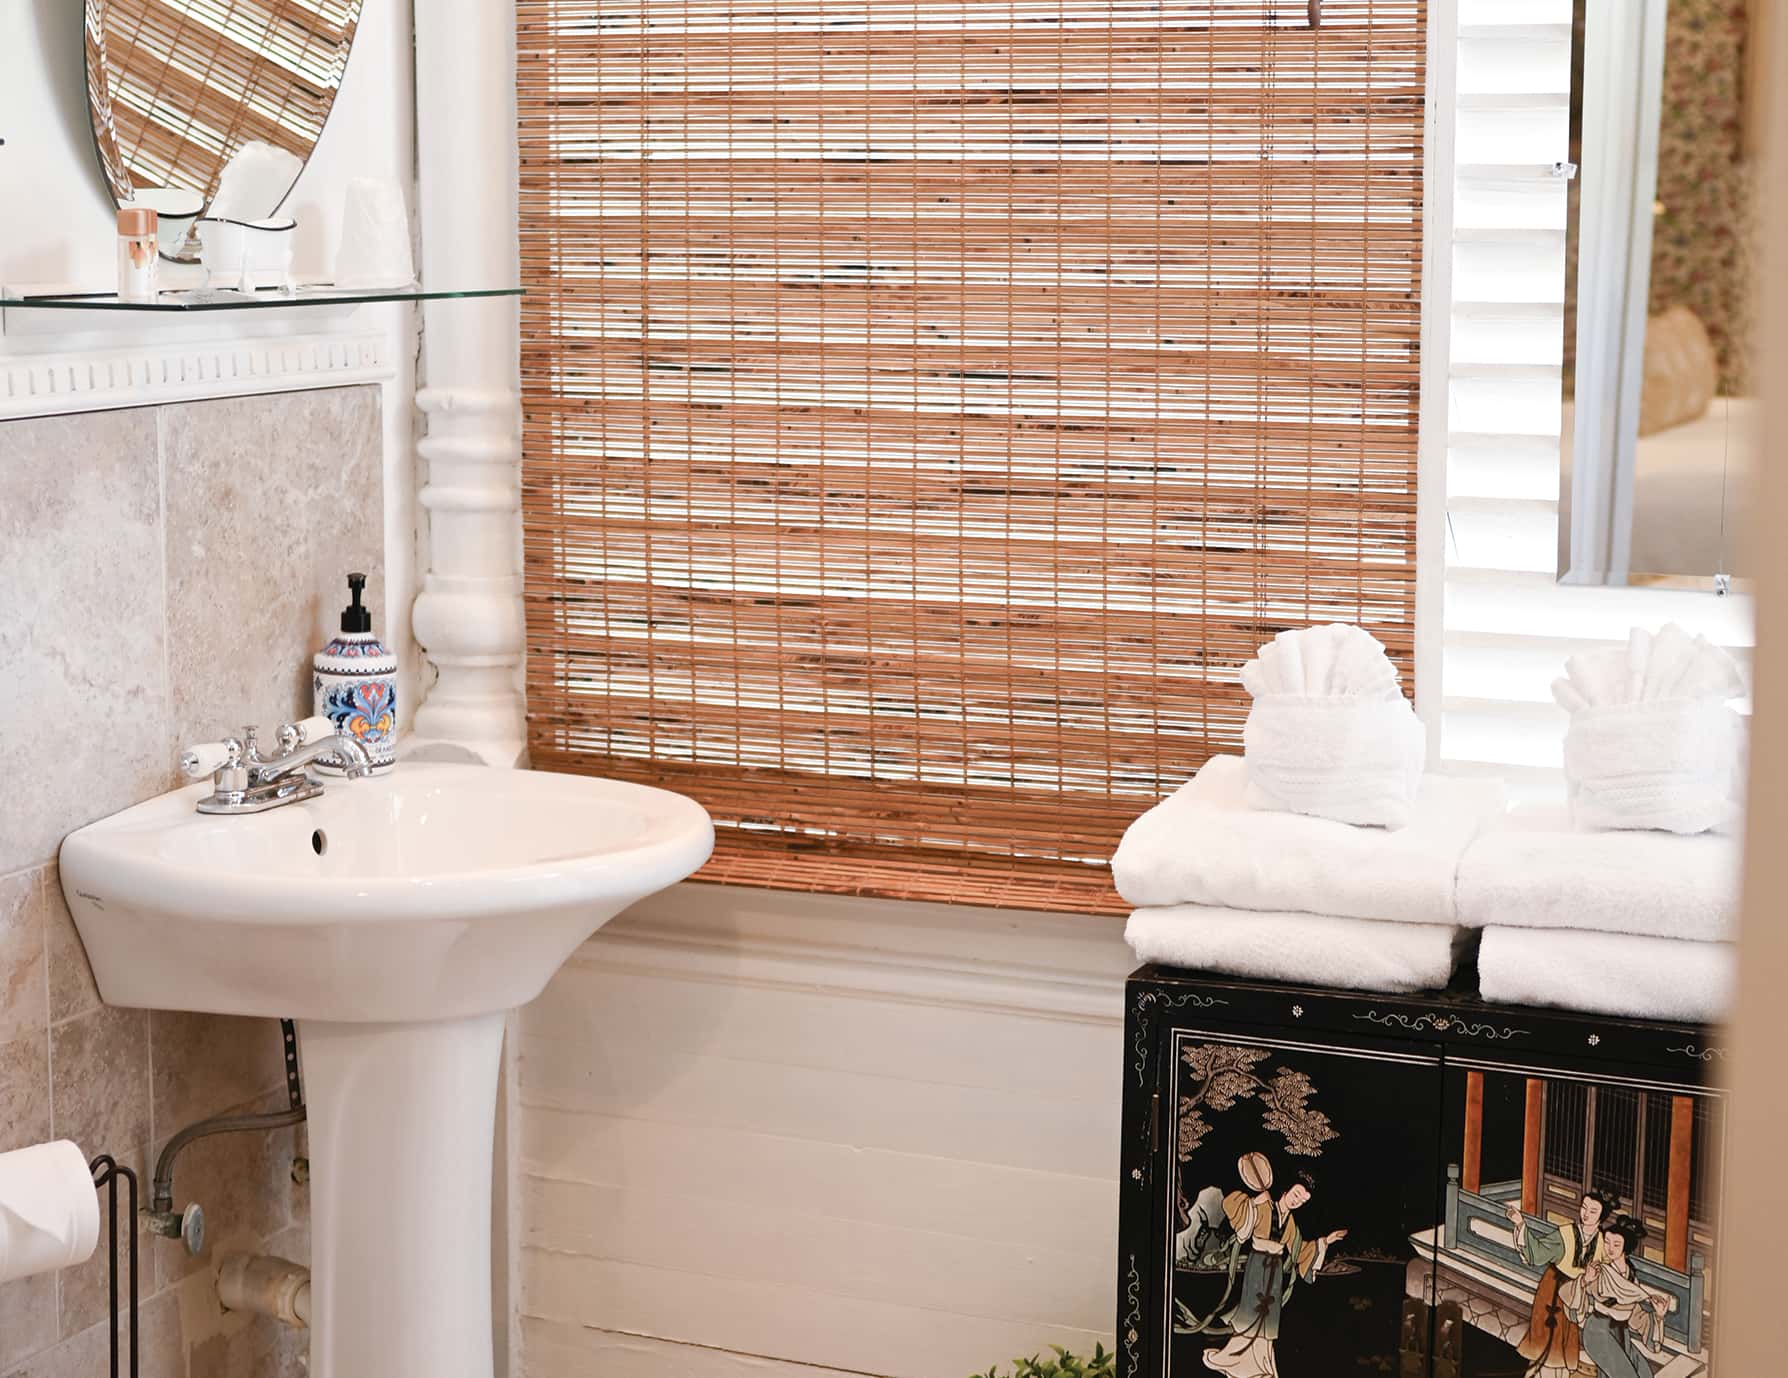 Garden Room bath at our Romantic Key West Accommodations